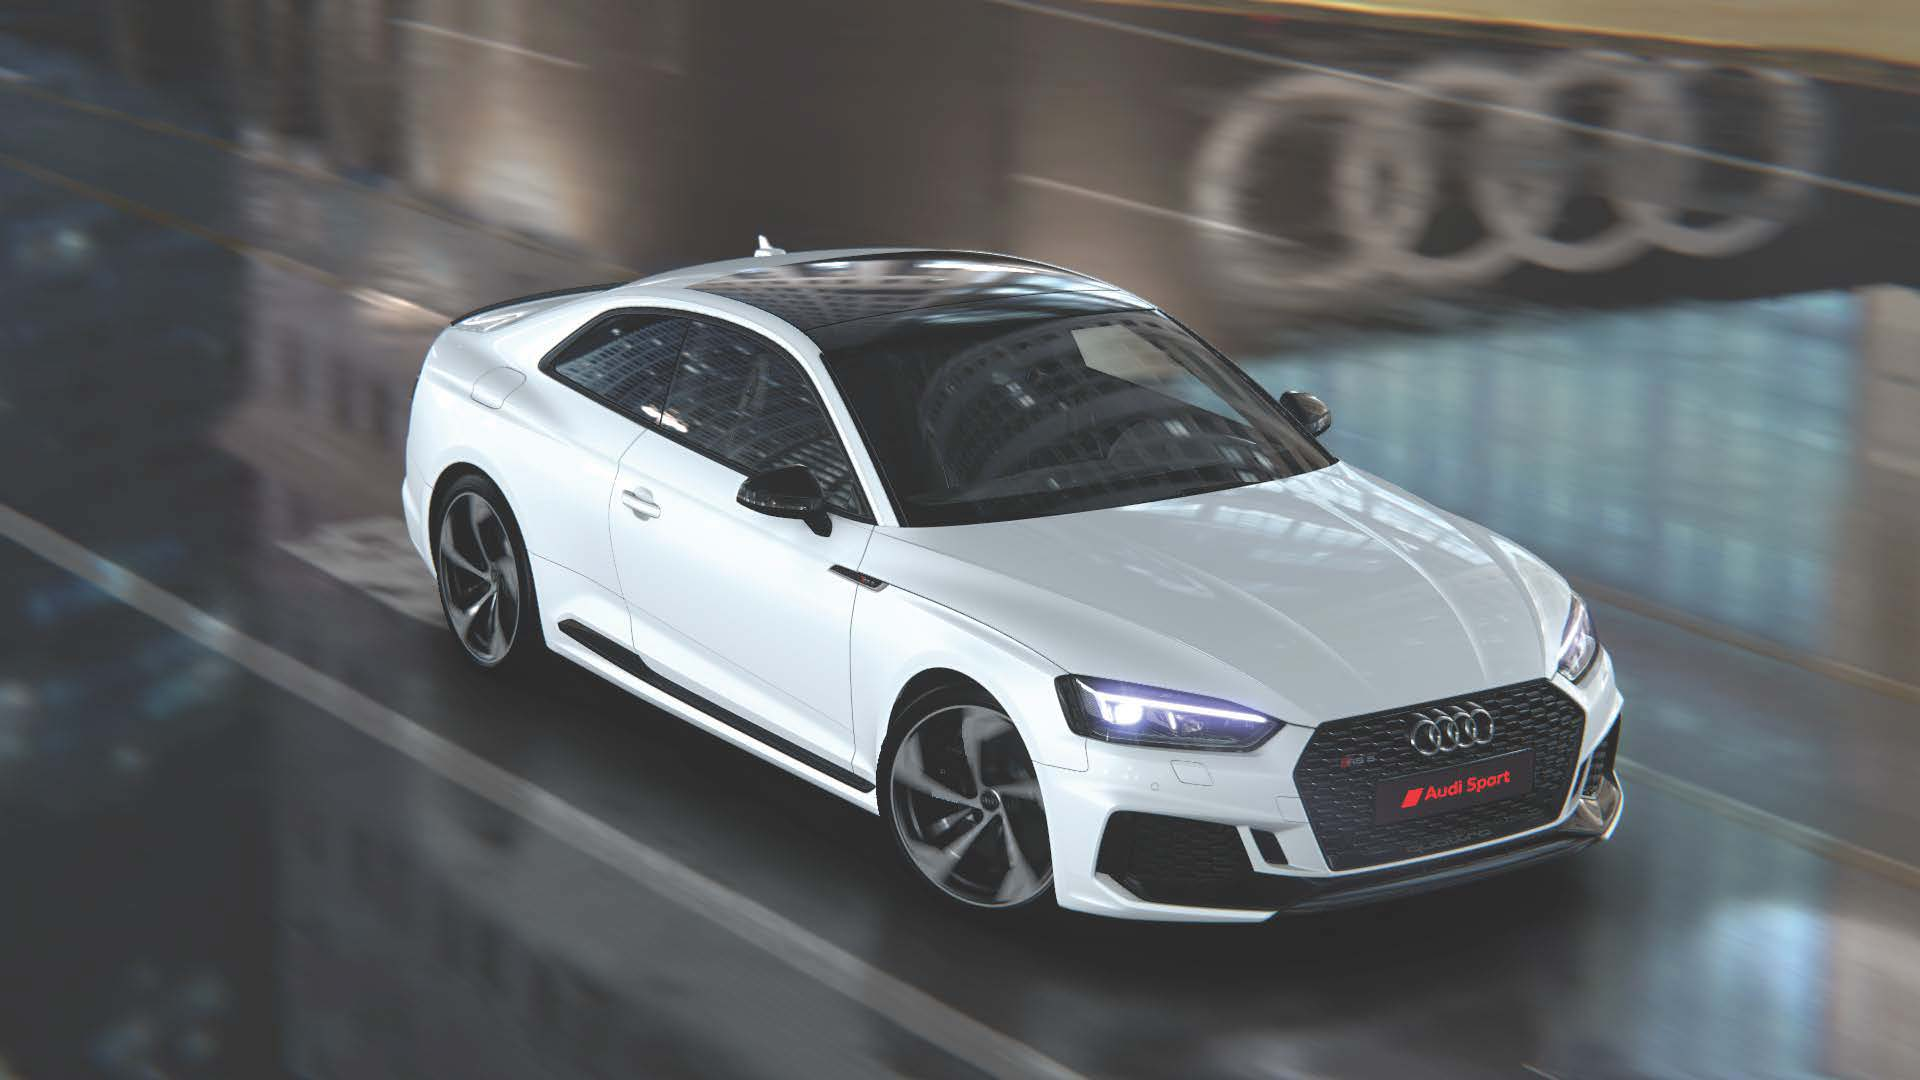 Audi RS 5 Sportback and RS 5 Coupe audi Sport Editions prepare for lift-off